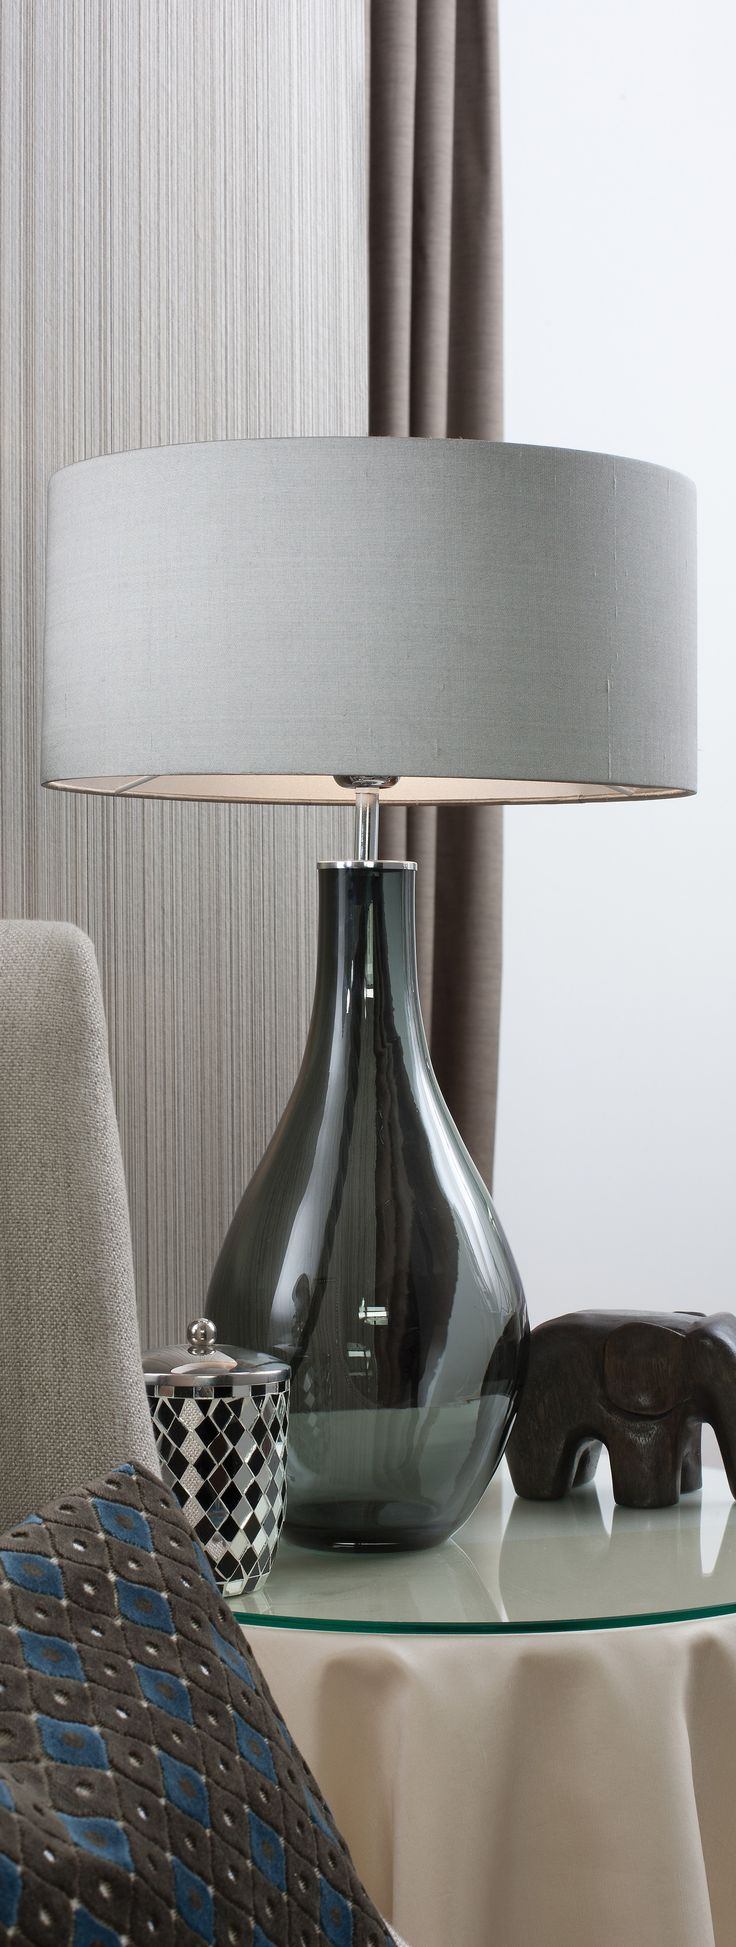 Lighting Design Living Room 17 Best Images About Lighting Table Lamps On Pinterest Lamp